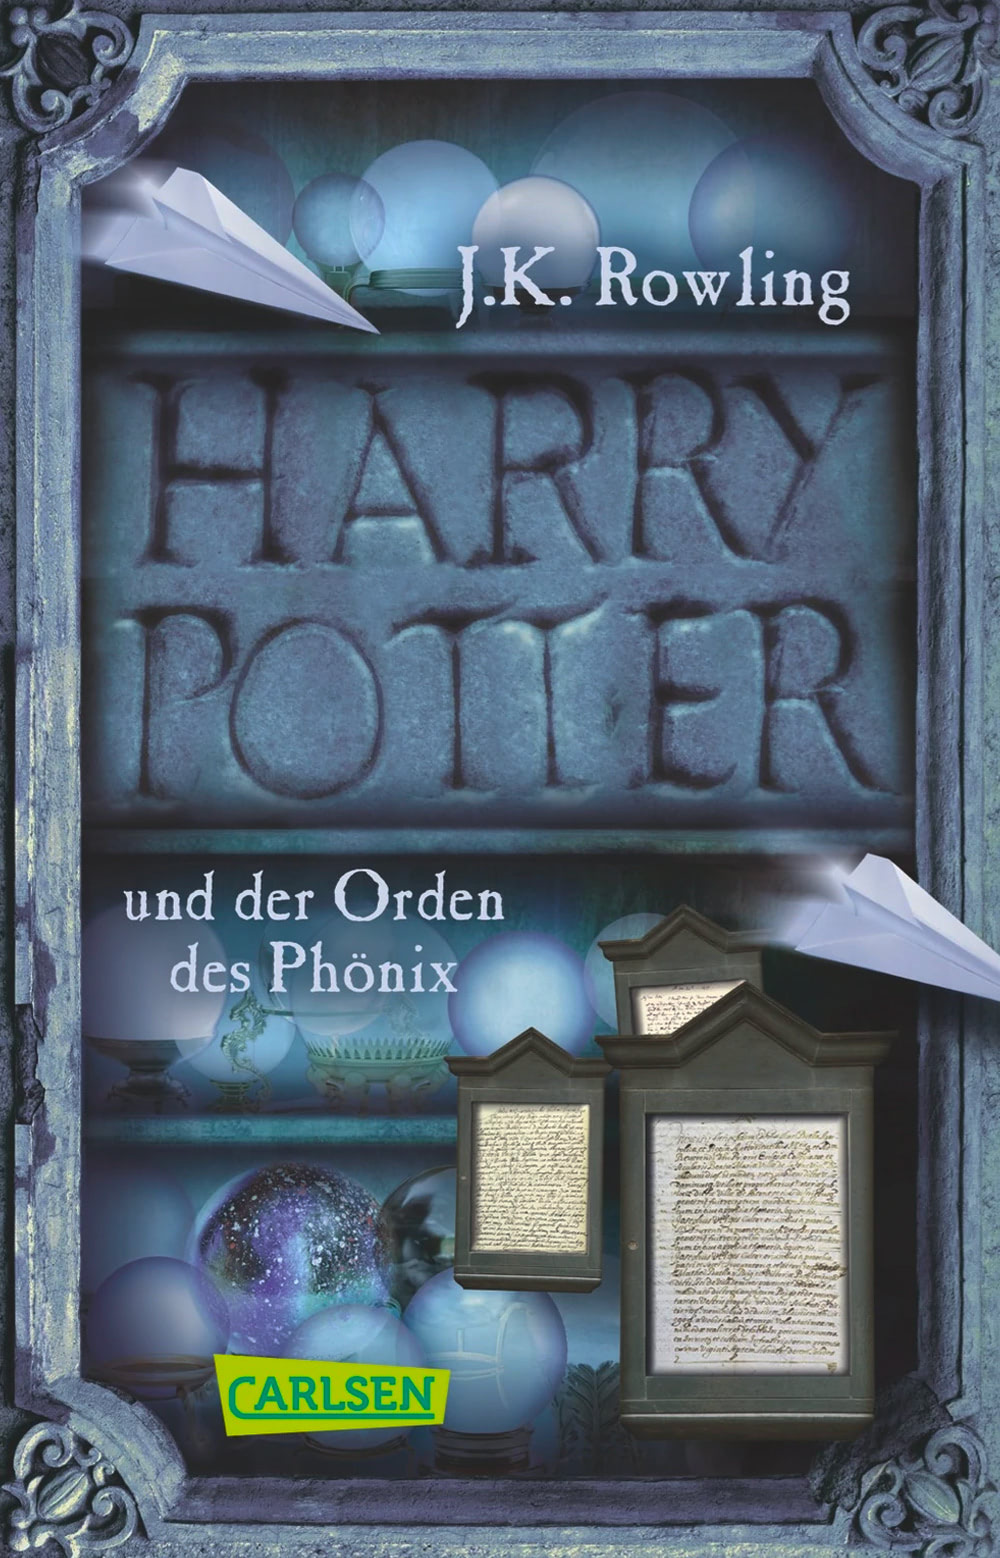 'Order of the Phoenix' German anniversary pocket edition